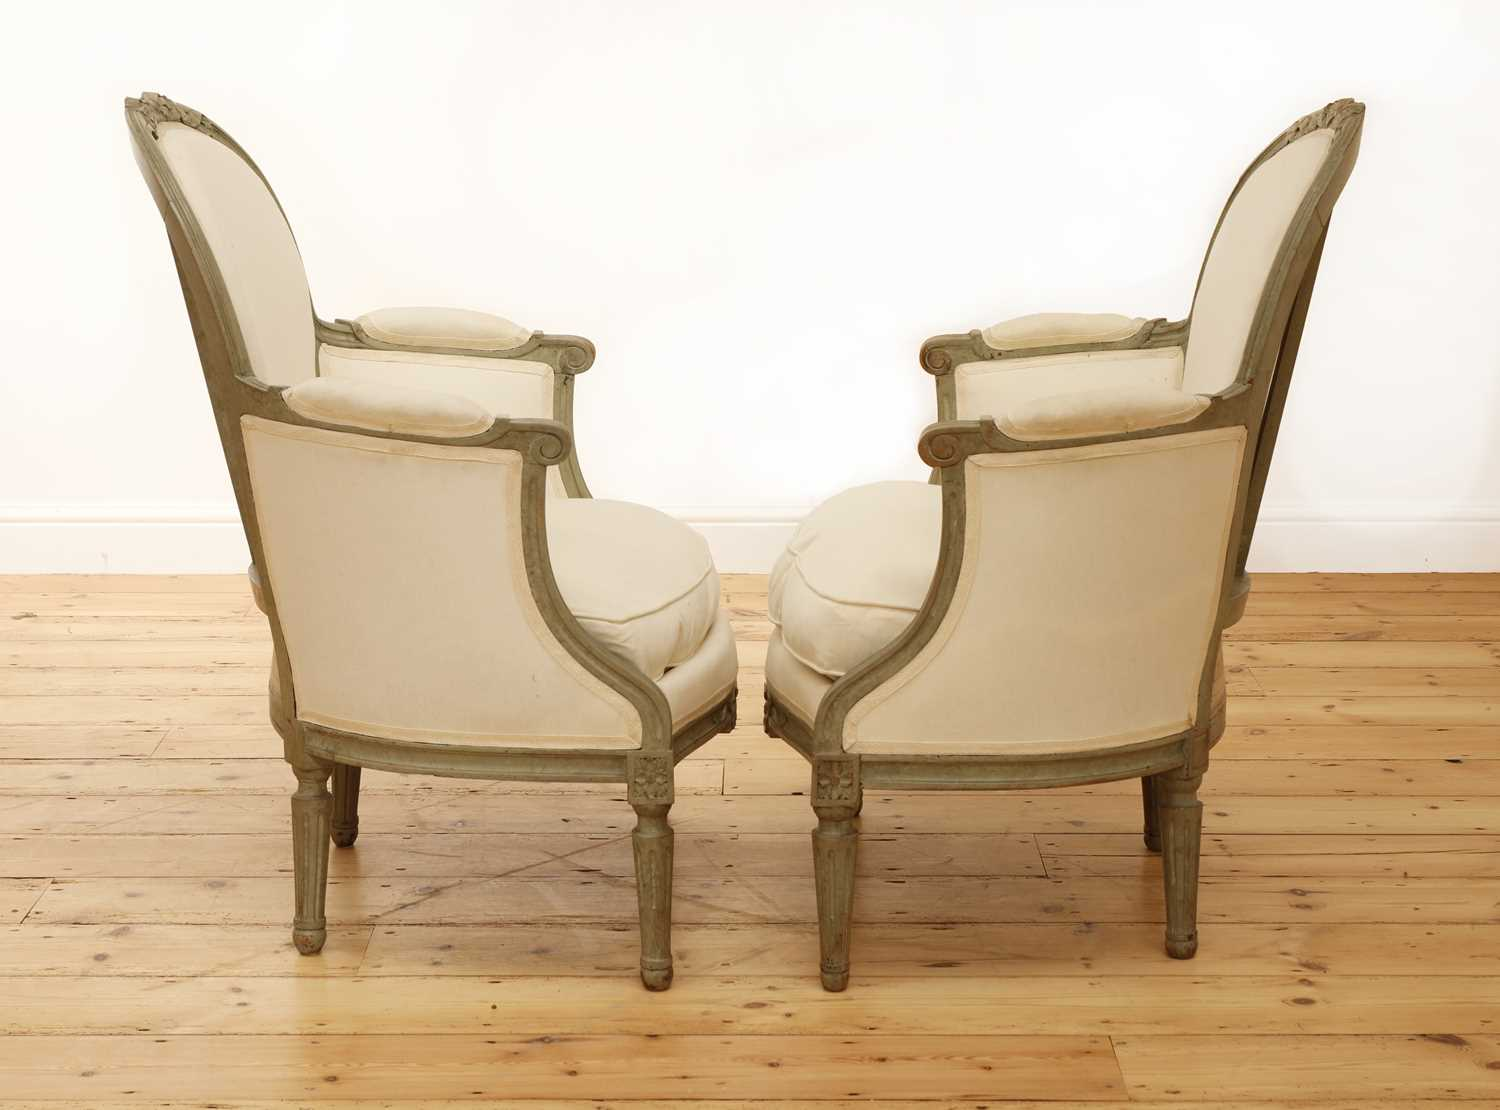 A pair of French Louis XVI-style painted fauteuils, - Image 3 of 5